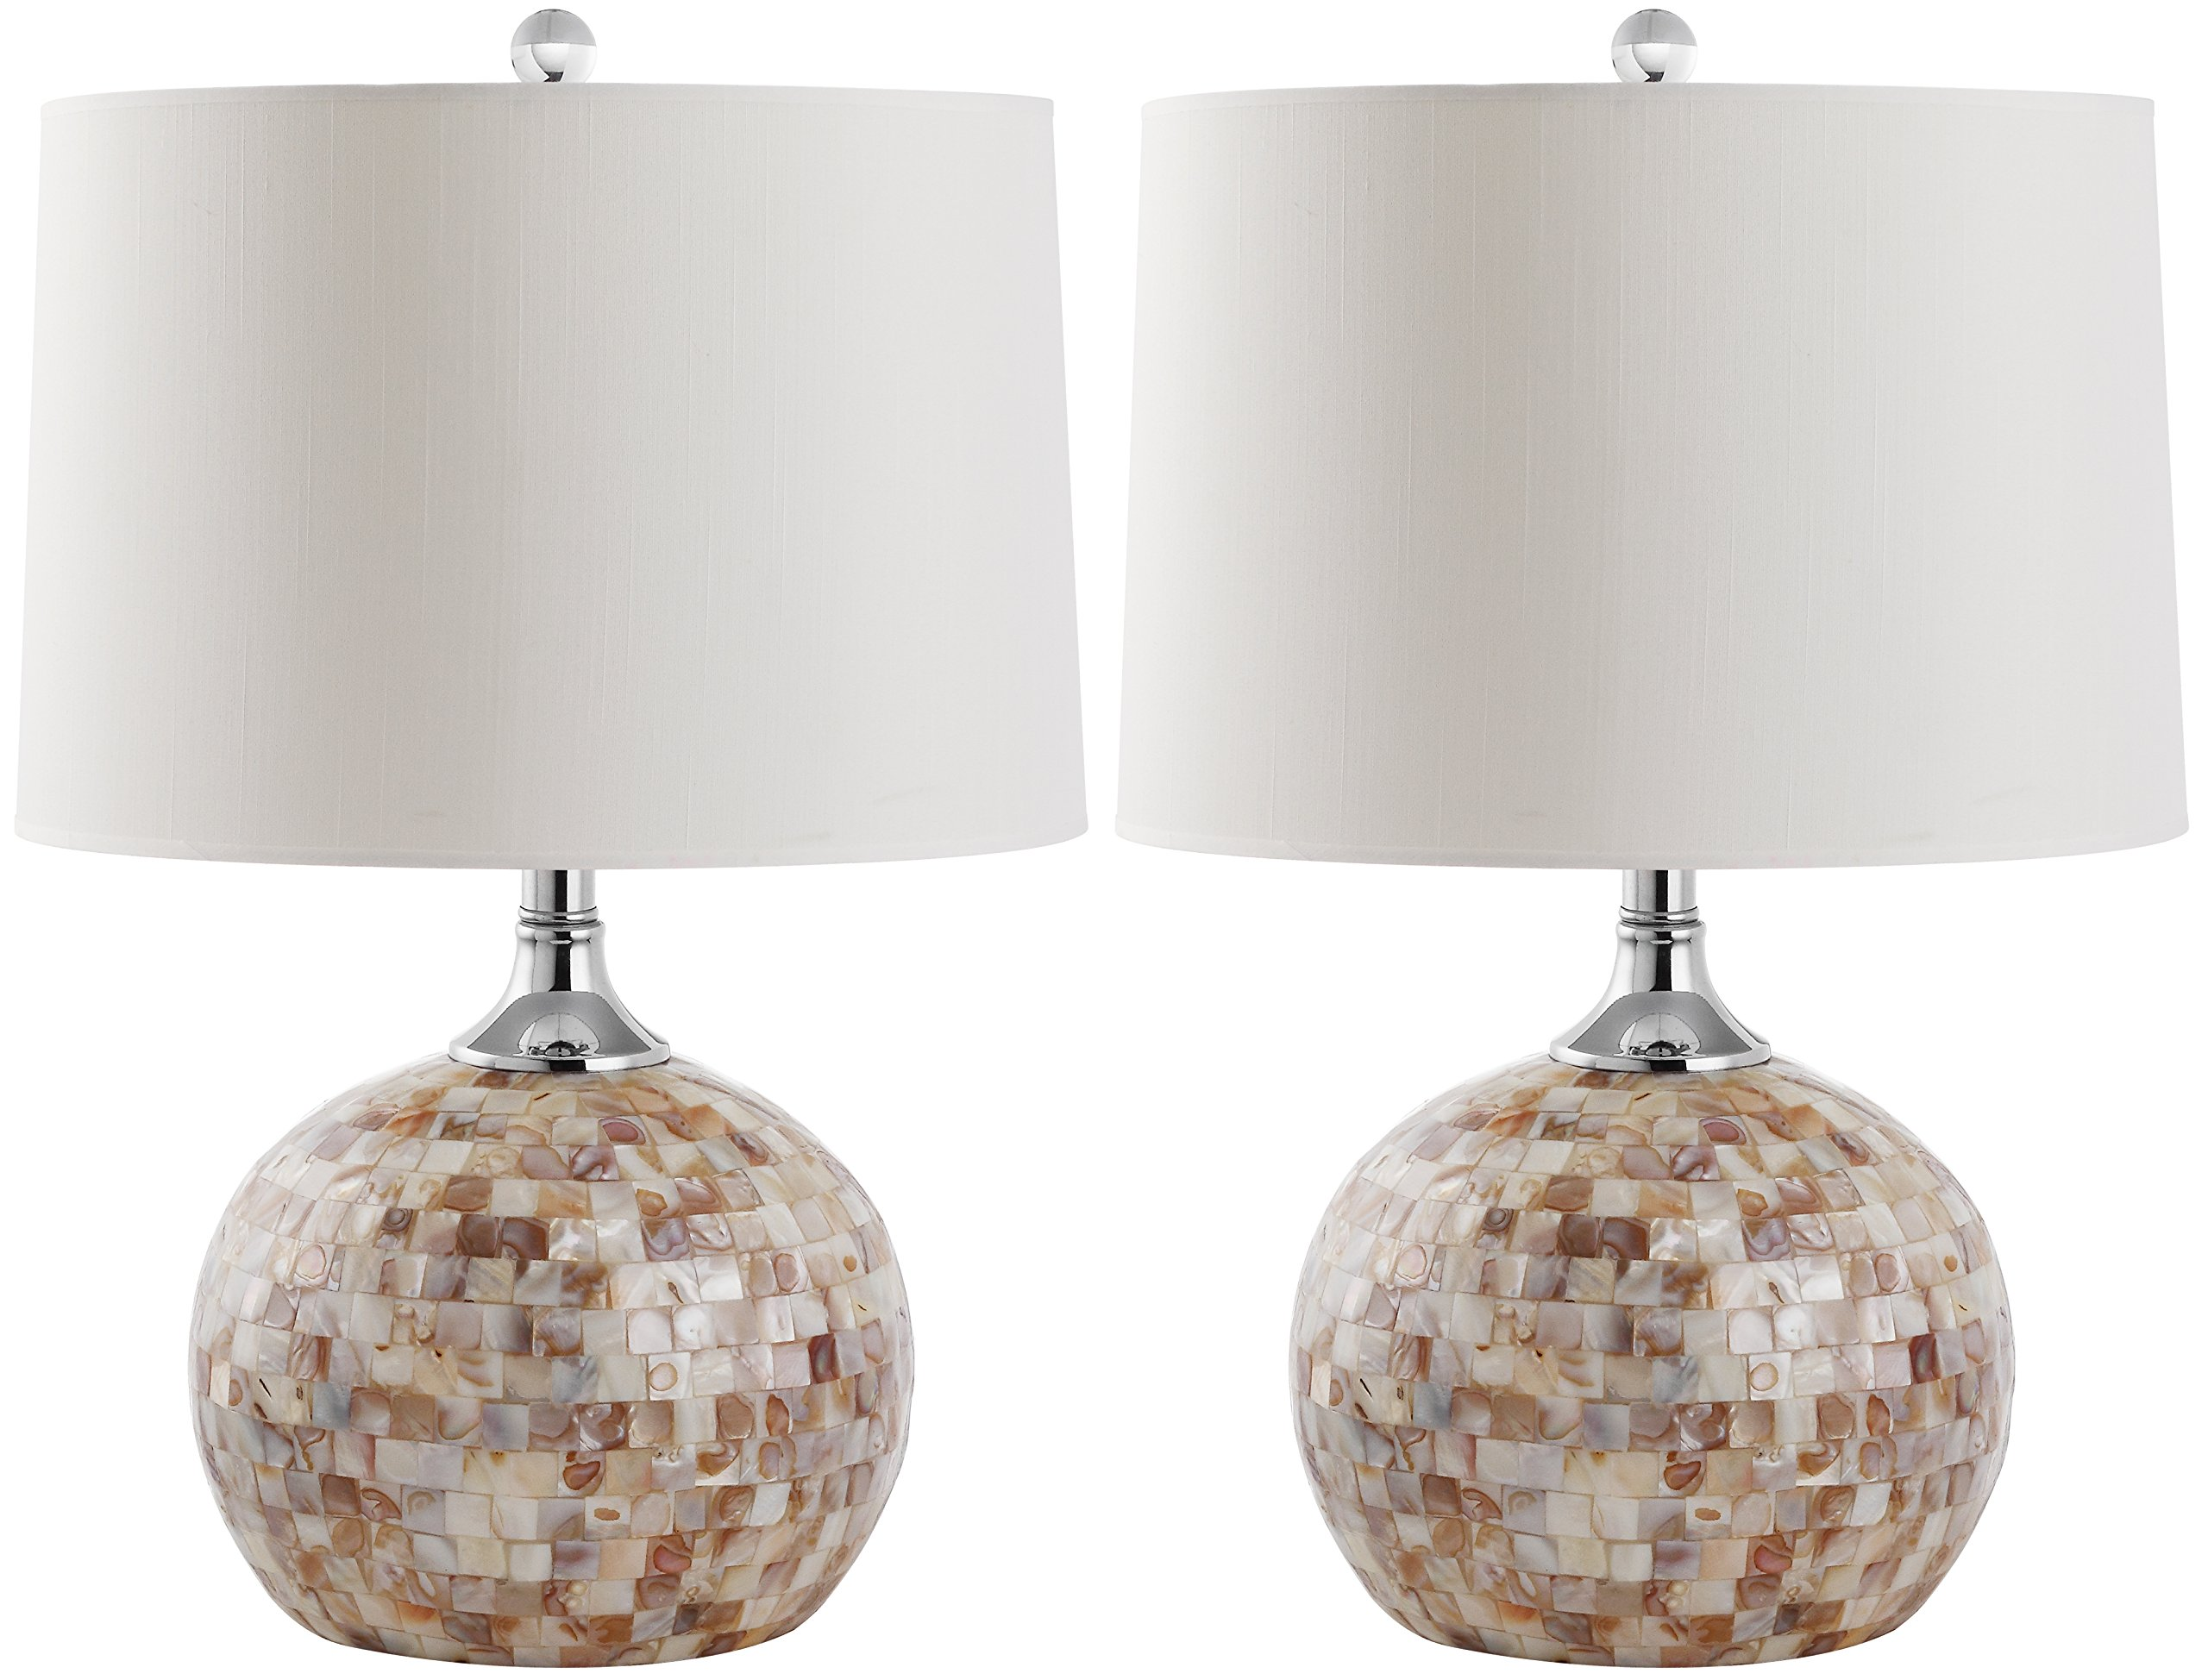 Safavieh Lighting Collection Nikki Ivory Shell 21.5-inch Table Lamp (Set of 2) by Safavieh